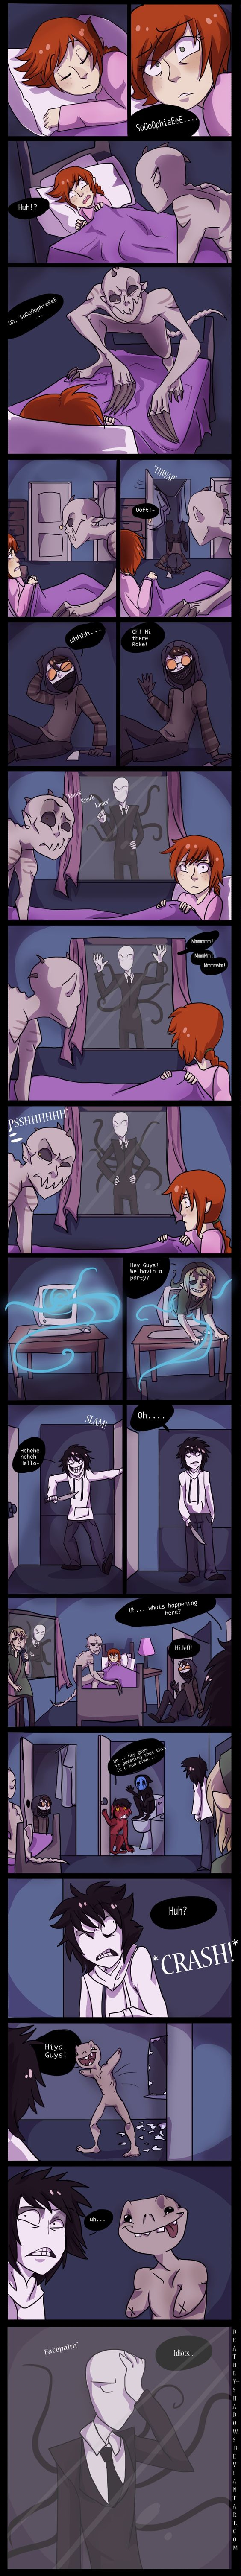 Creepypasta party!! I don't even know why... but I found this hilarious, oh me and my messed up mind :p